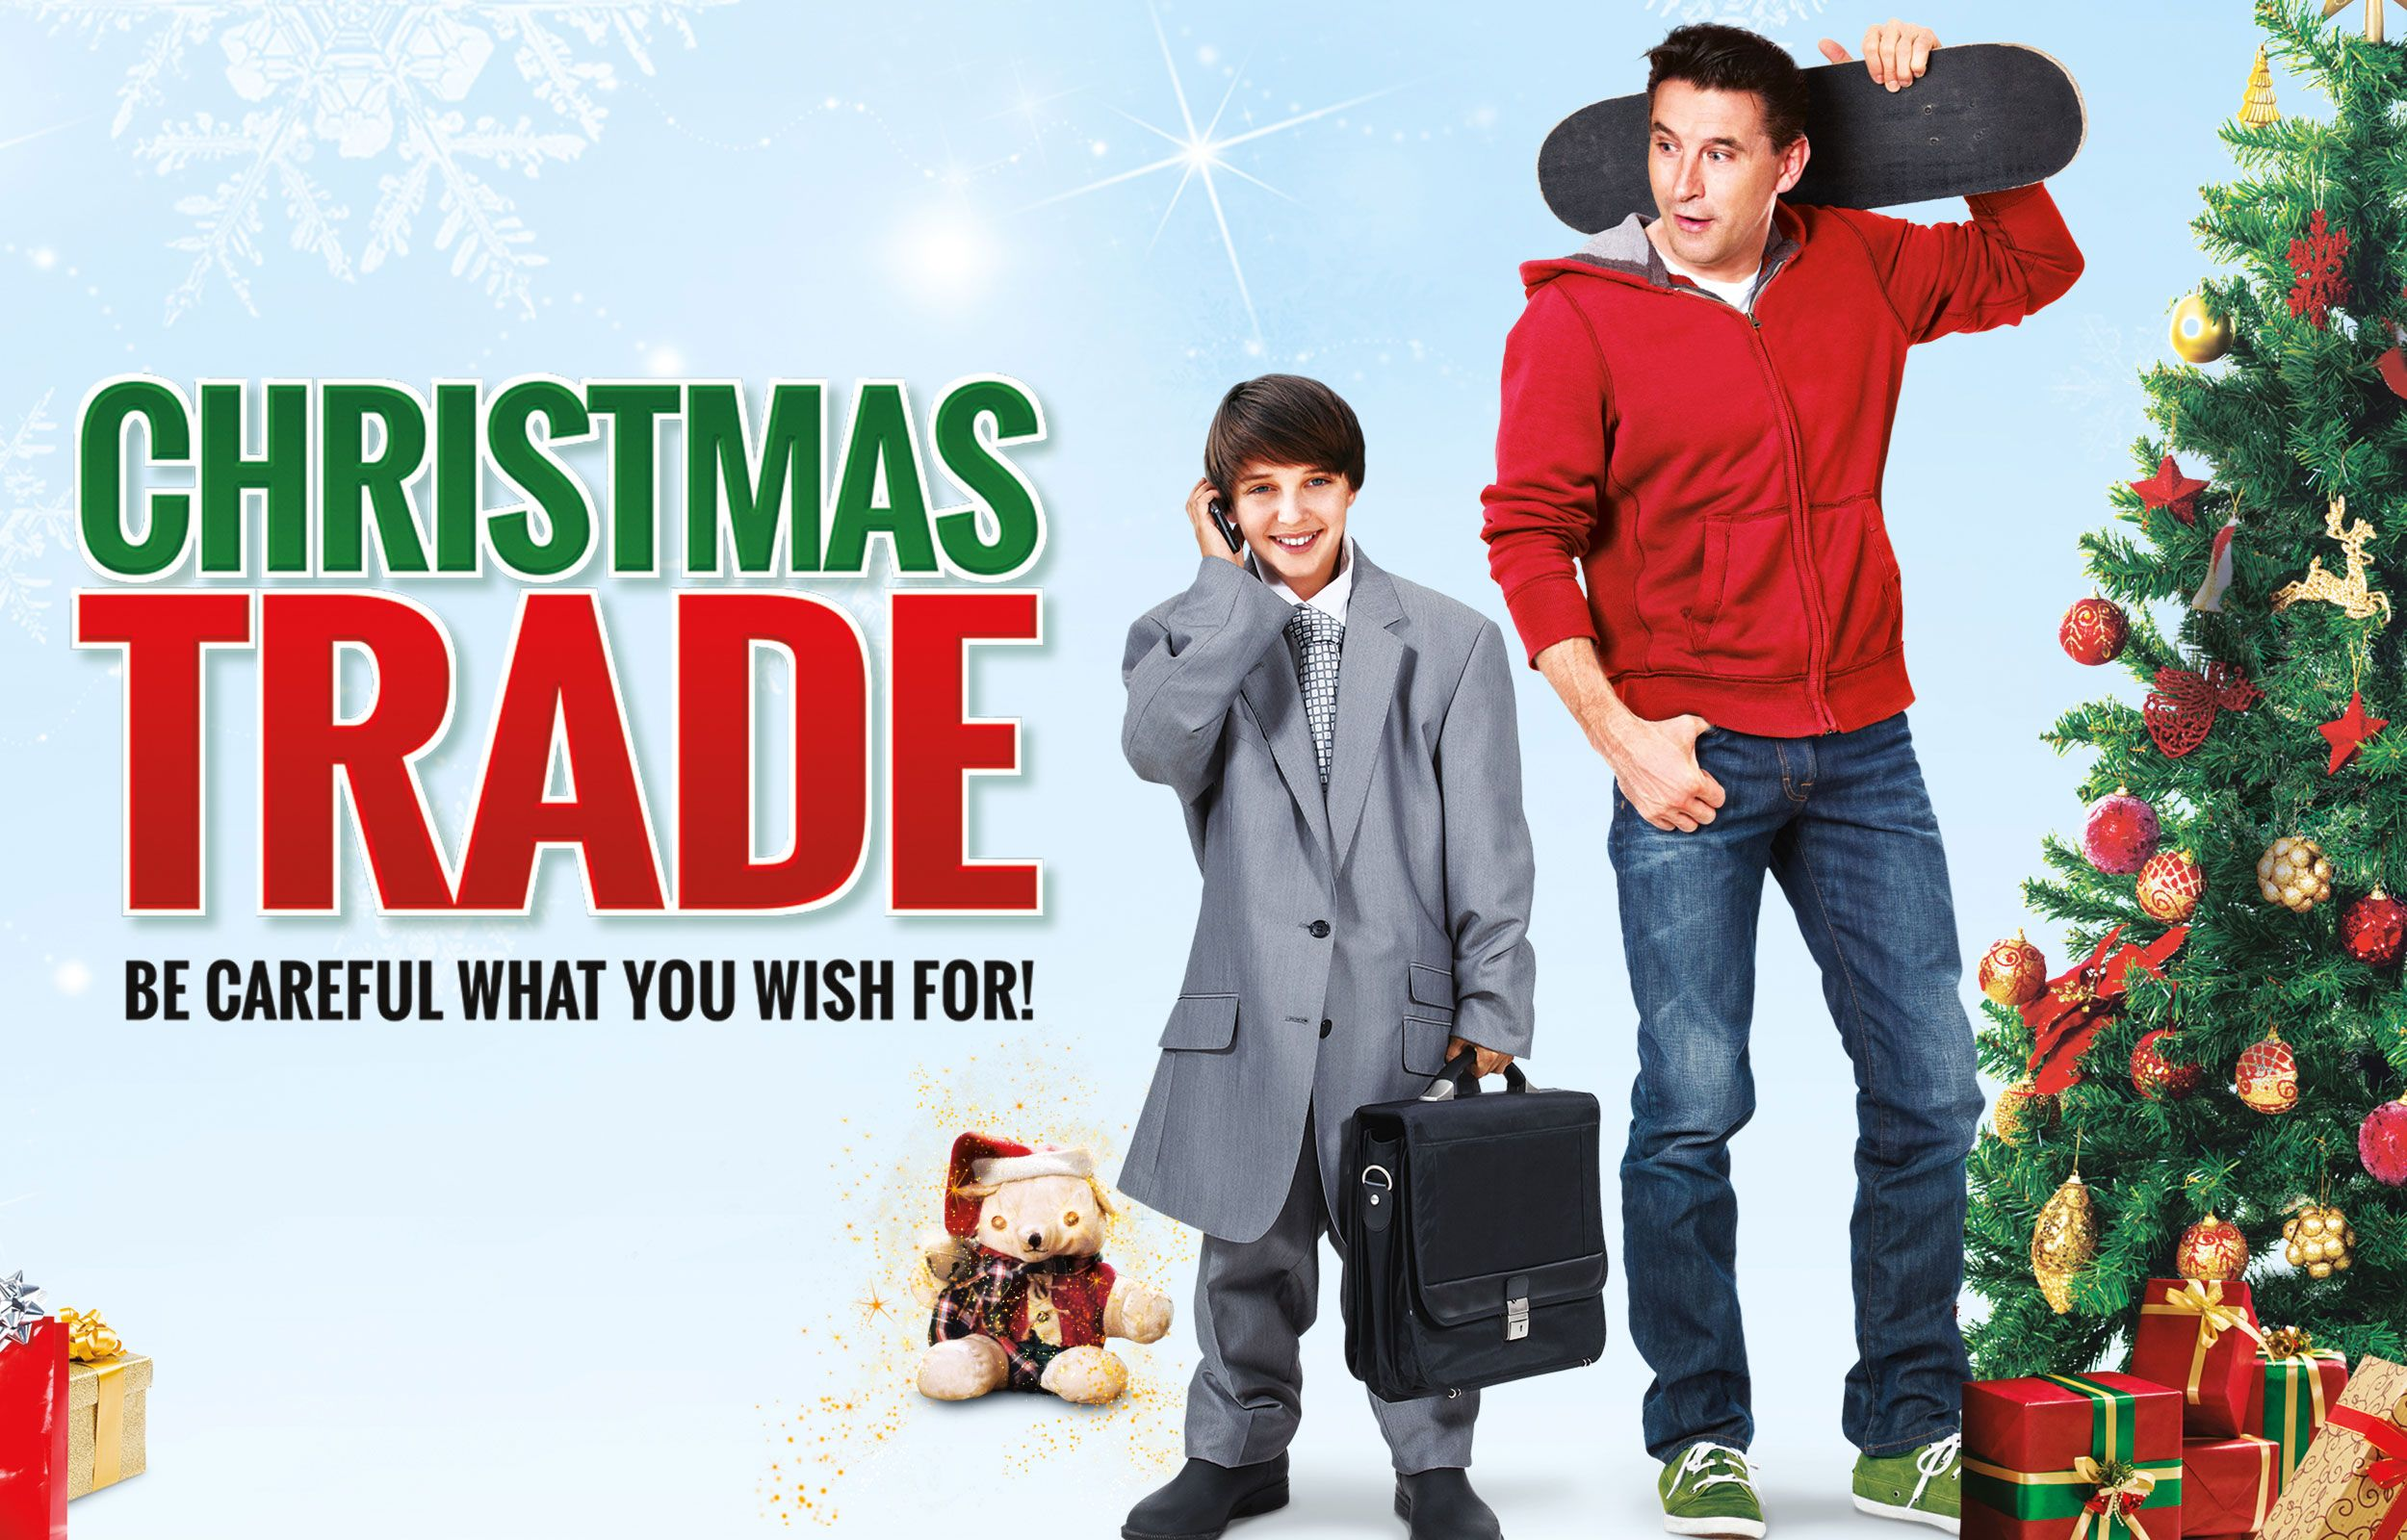 Christmas Trade Uptv Com Uplifting Entertainment Family Movies Tv Series Music Christmas Movies Trade Movie Christmas Movies List